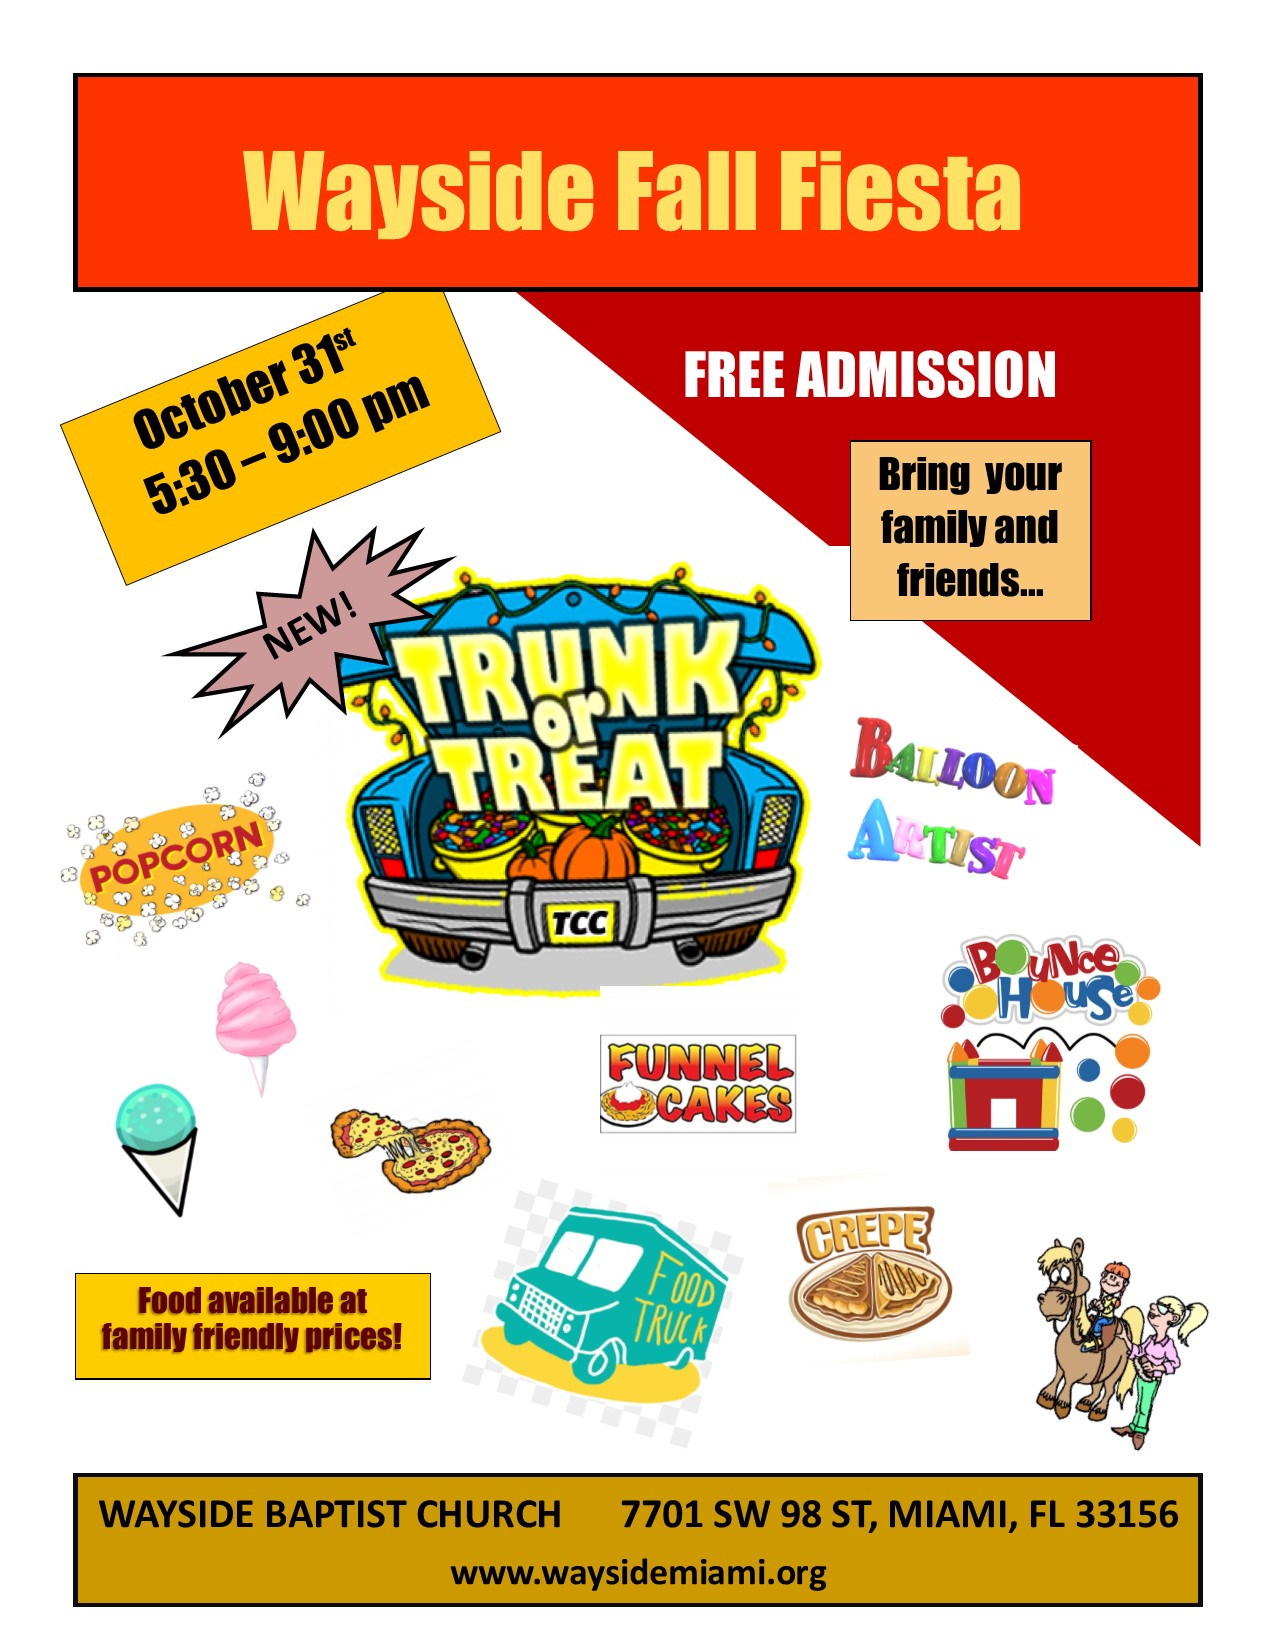 2018 fall fiesta flyer Wayside Baptist Church